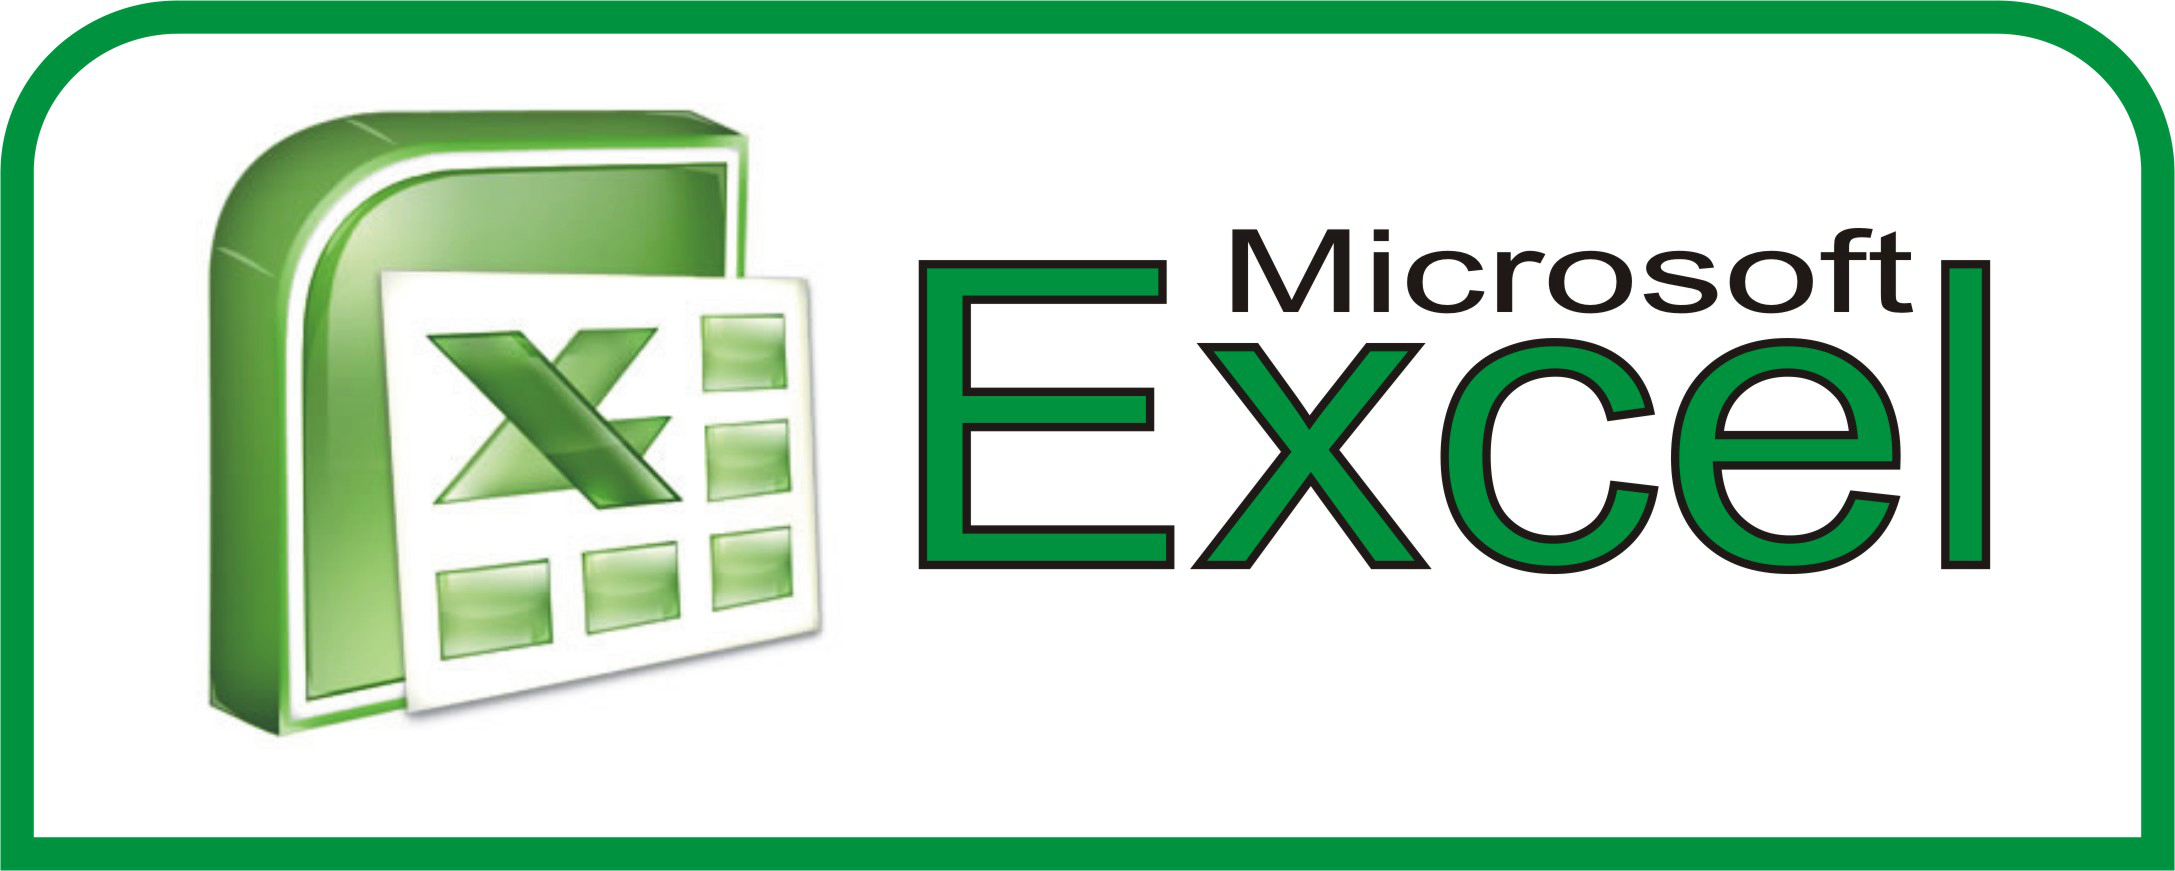 Ediblewildsus  Unique  Excel Shortcuts You Probably Didnt Know About  Techdissected With Exquisite Graph Function In Excel Besides Stock Excel Format Furthermore Microsoft Excel  Formulas And Functions Tutorial With Charming London Motor Show Excel Also Extract Pdf Table To Excel In Addition What Can Excel Be Used For And Excel Quotient As Well As Excel  Create Drop Down List Additionally Trial Balance Worksheet Excel Template From Techdissectedcom With Ediblewildsus  Exquisite  Excel Shortcuts You Probably Didnt Know About  Techdissected With Charming Graph Function In Excel Besides Stock Excel Format Furthermore Microsoft Excel  Formulas And Functions Tutorial And Unique London Motor Show Excel Also Extract Pdf Table To Excel In Addition What Can Excel Be Used For From Techdissectedcom